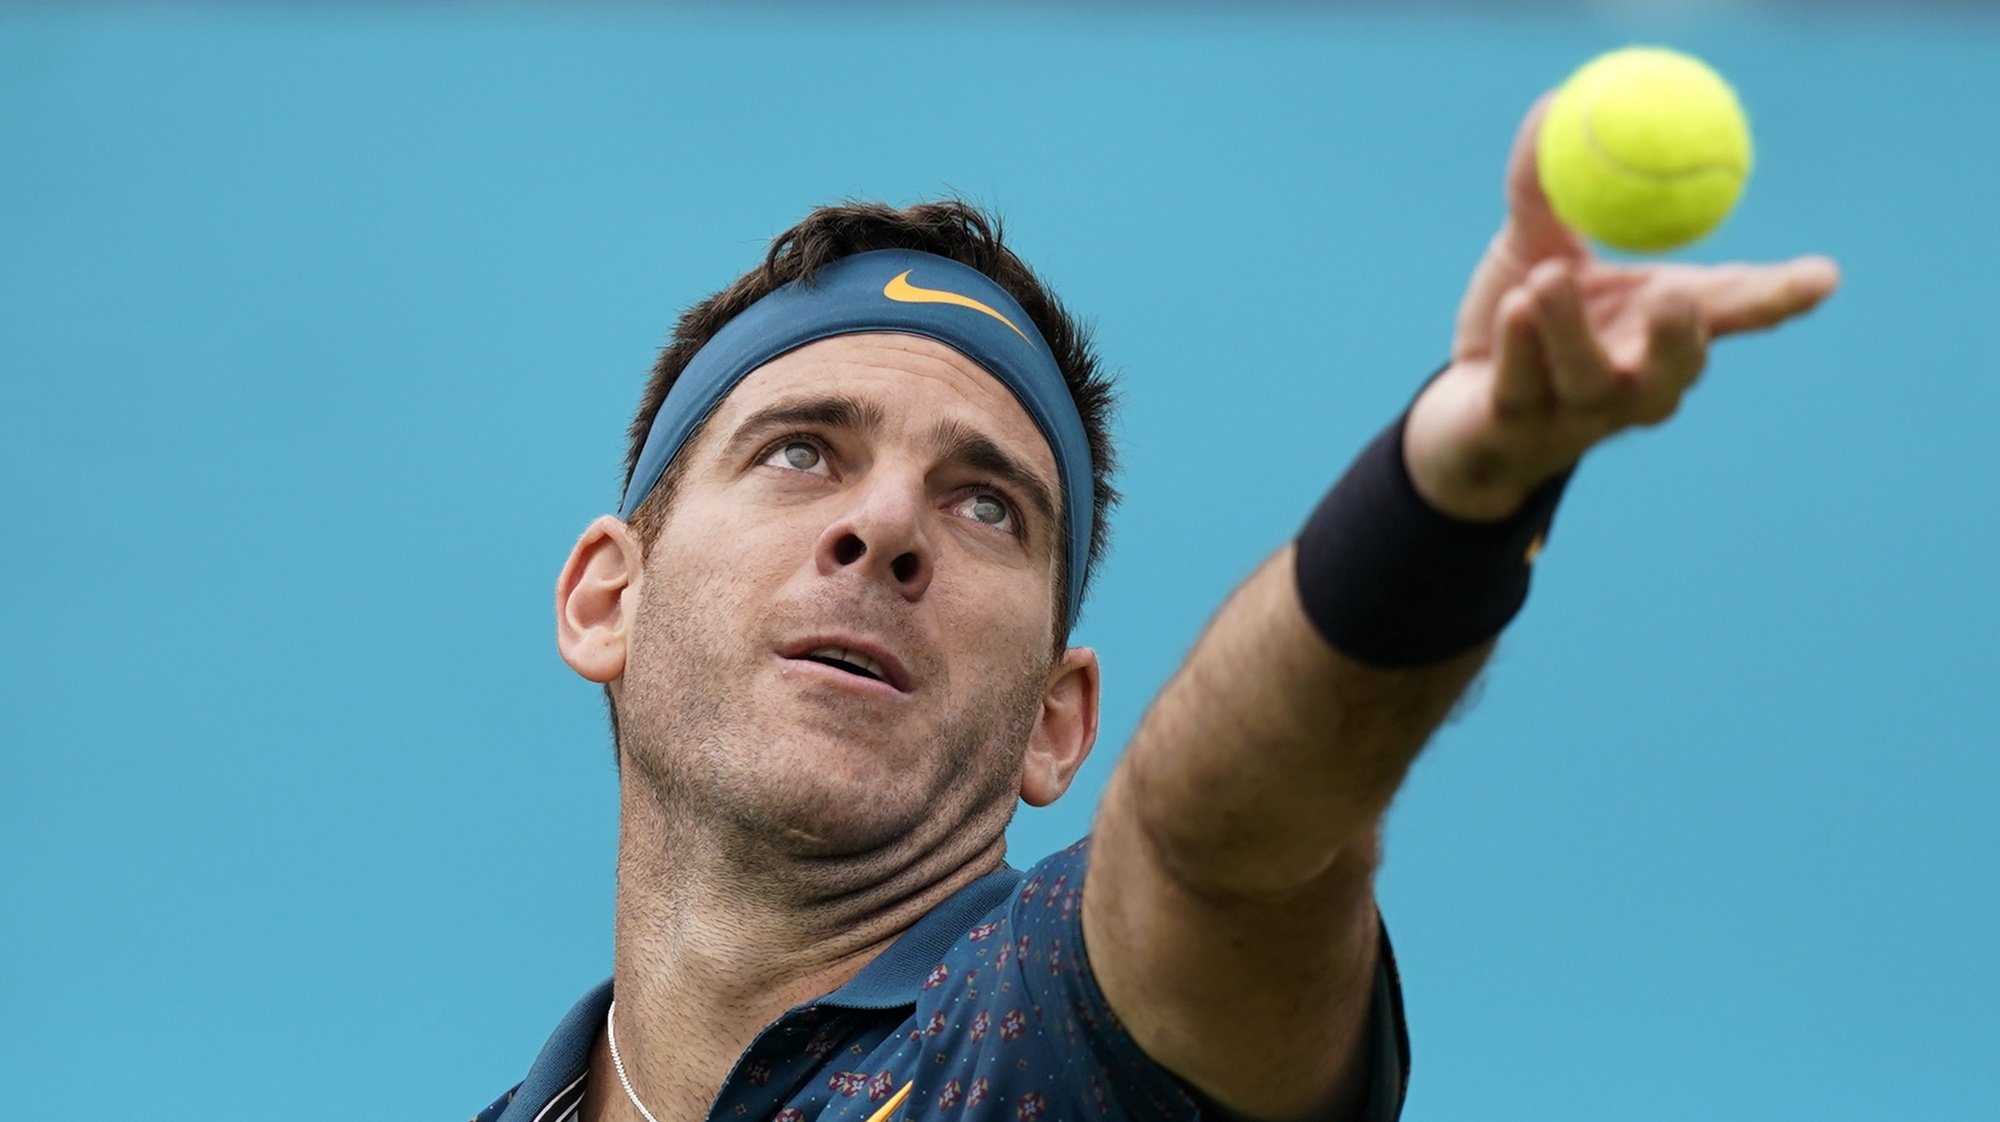 epa07657959 Argentina's Juan Martin del Potro serves to Canada's Denis Shapovalov during their round 32 match at the Fever Tree Championship at Queen's Club in London, Britain, 19 June 2019. The tournament runs from 17th June till 23 June 2019.  EPA/WILL OLIVER